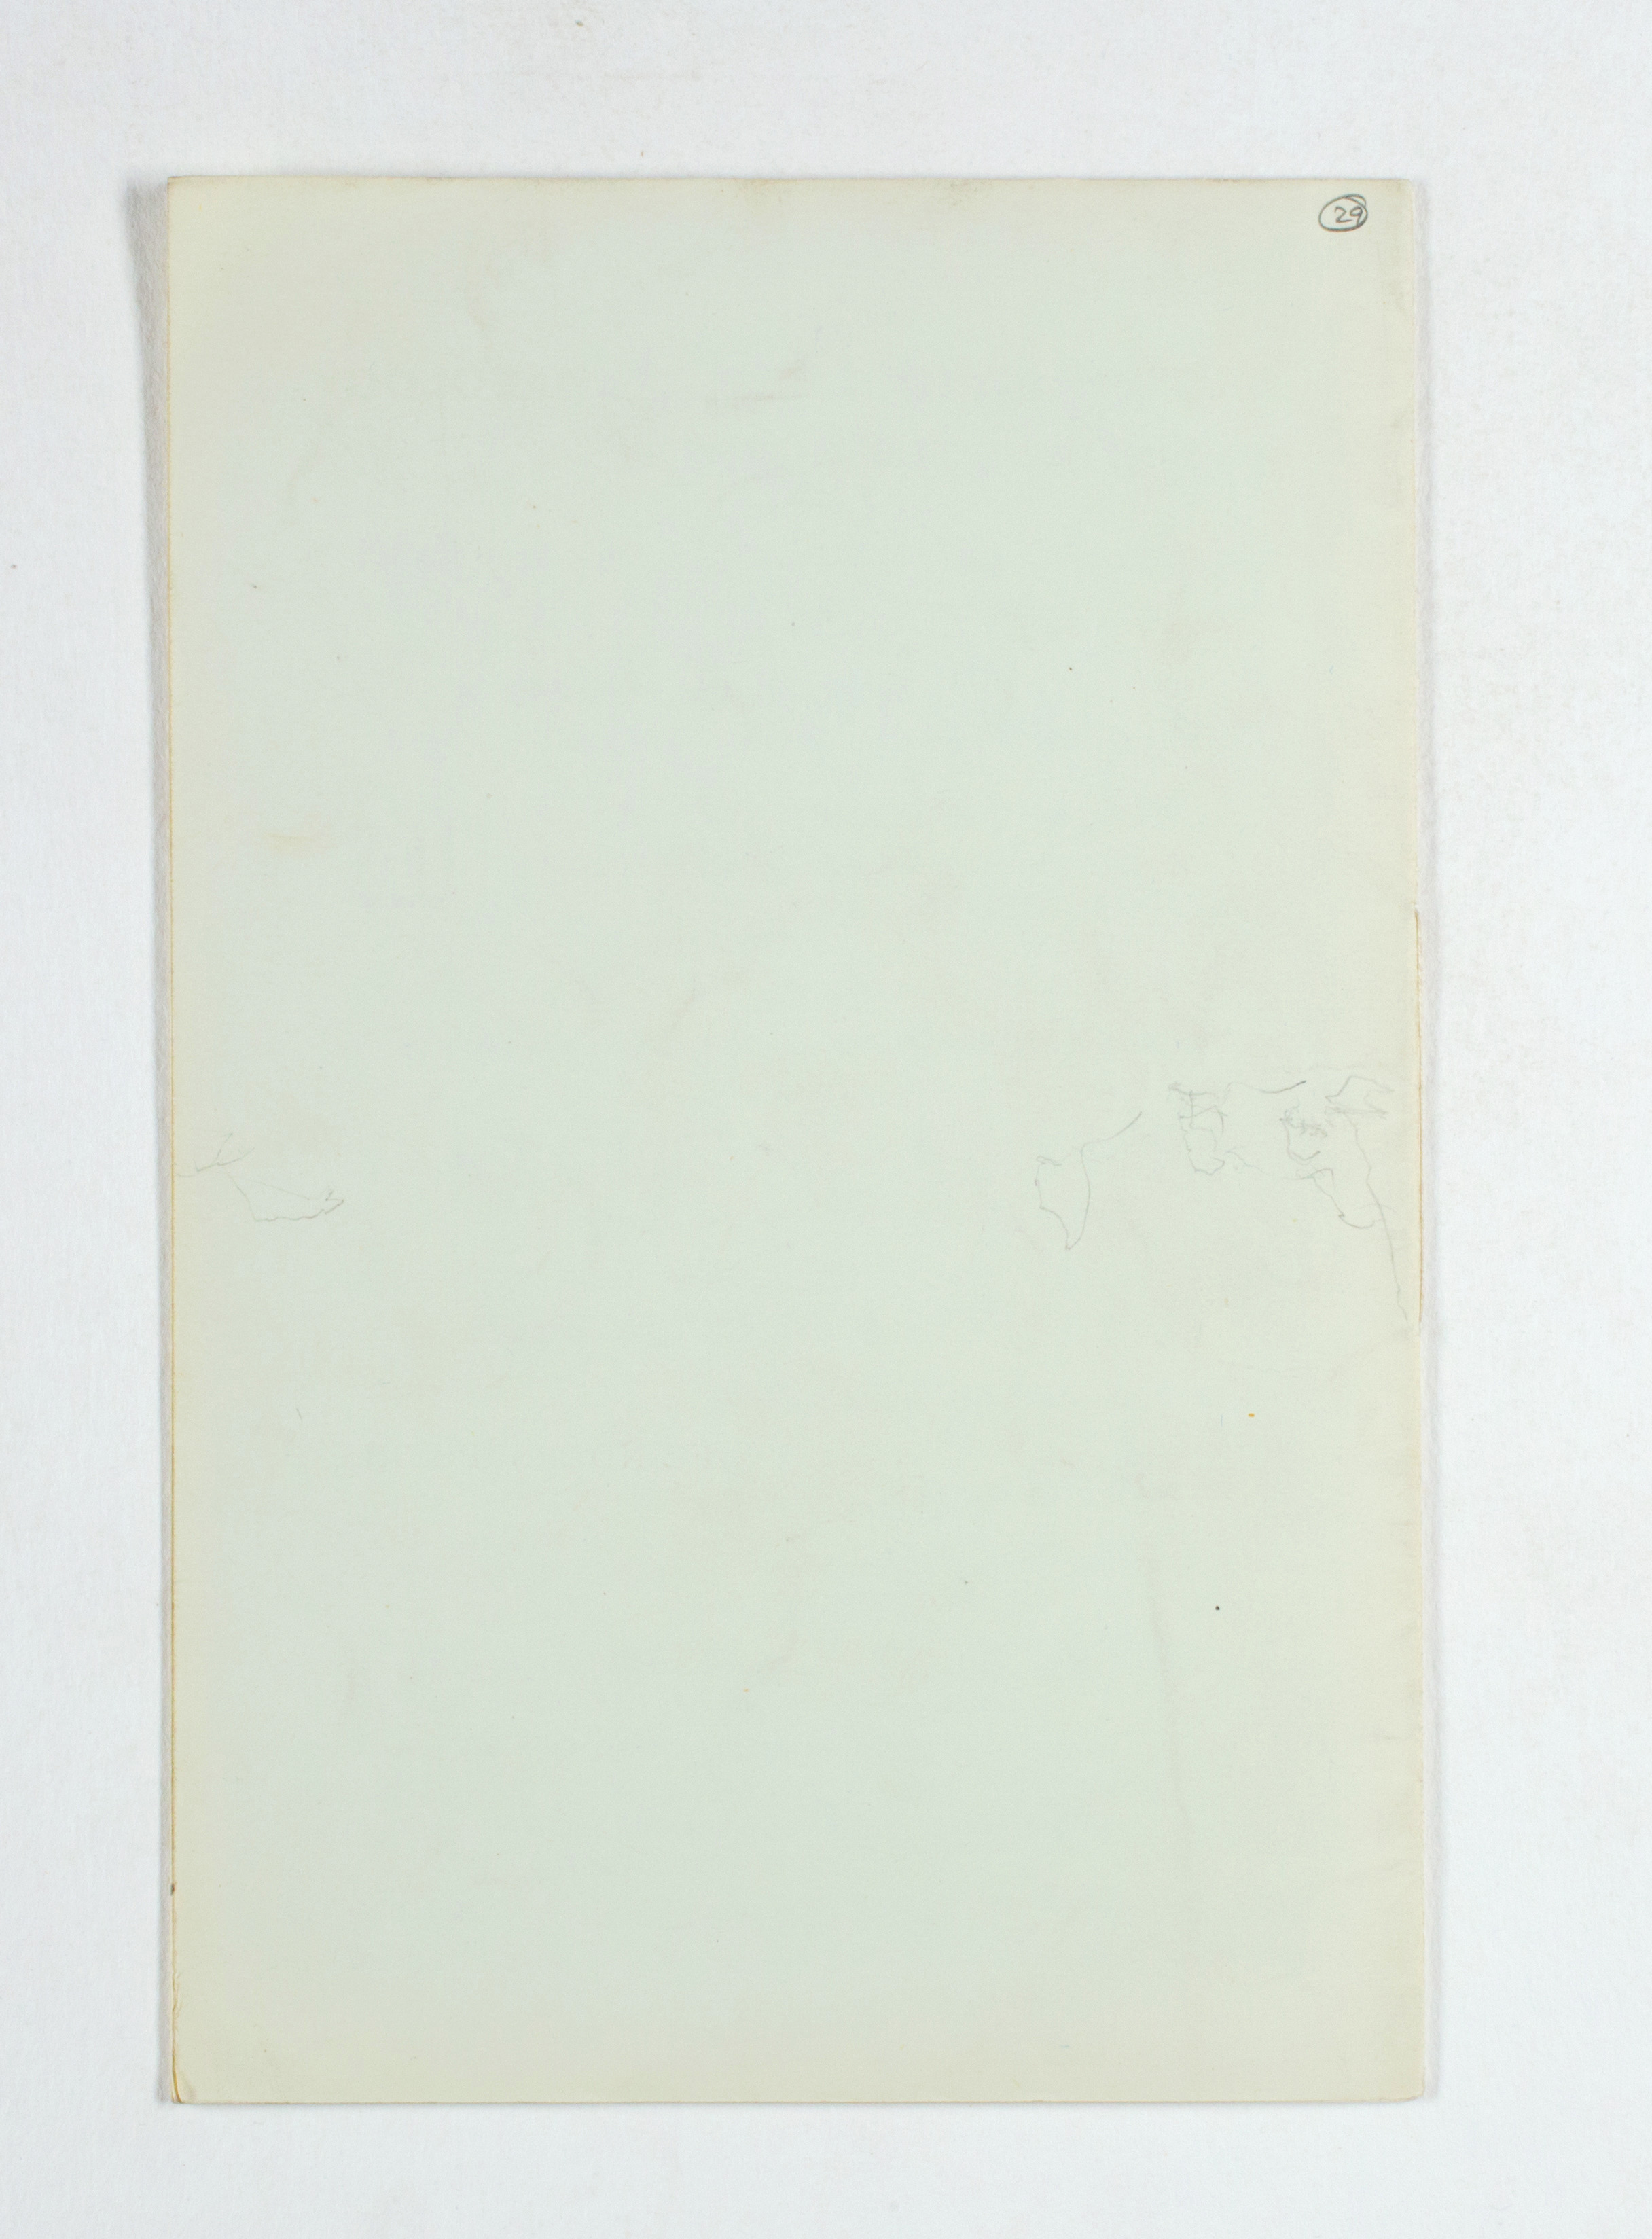 1923-24 Qau el-Kebir, Hemamieh Exhibition catalogue PMA/WFP1/D/27/29.9